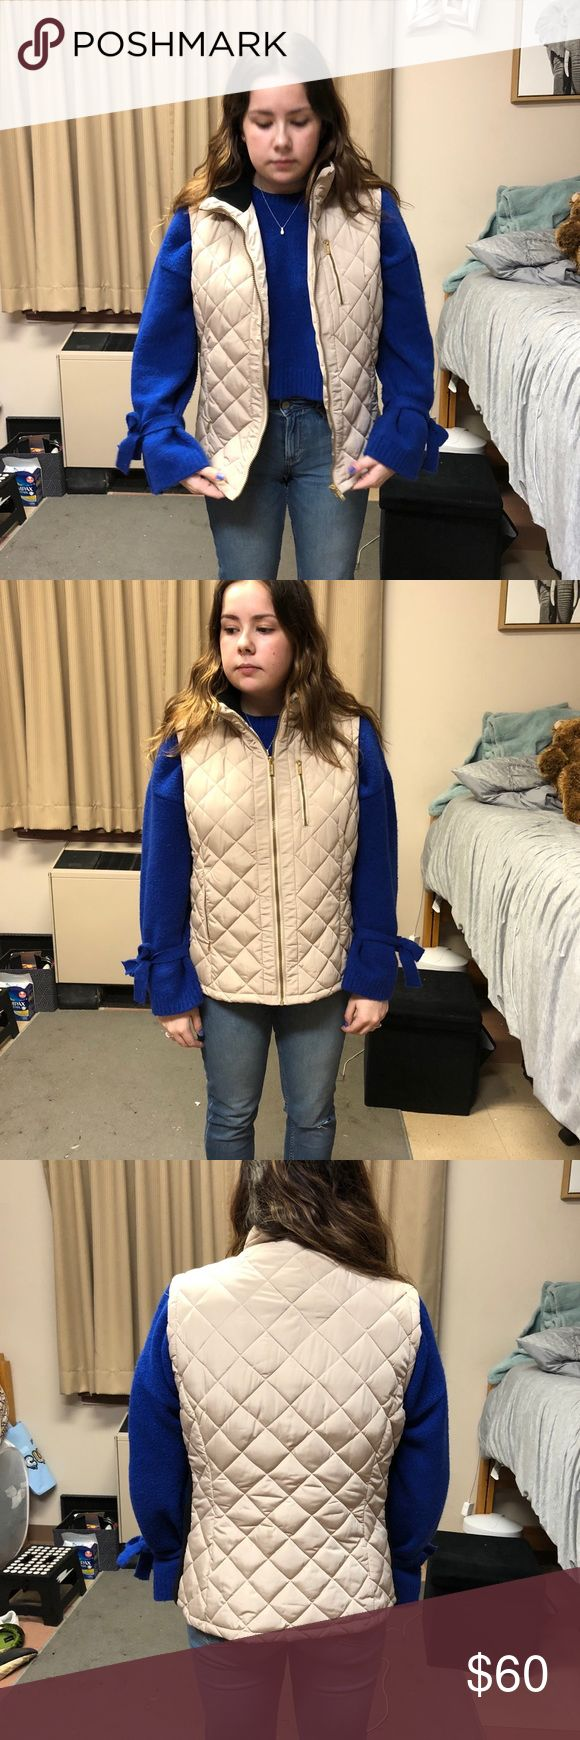 Calvin Klein Quilted Vest Beige vest perfect for fall or spring days. You can even pair it with a heavy sweater underneath for the winter time! Size large. I also have a black one. It has been worn quite a few times, but it is still in great condition! Calvin Klein Jackets & Coats Vests